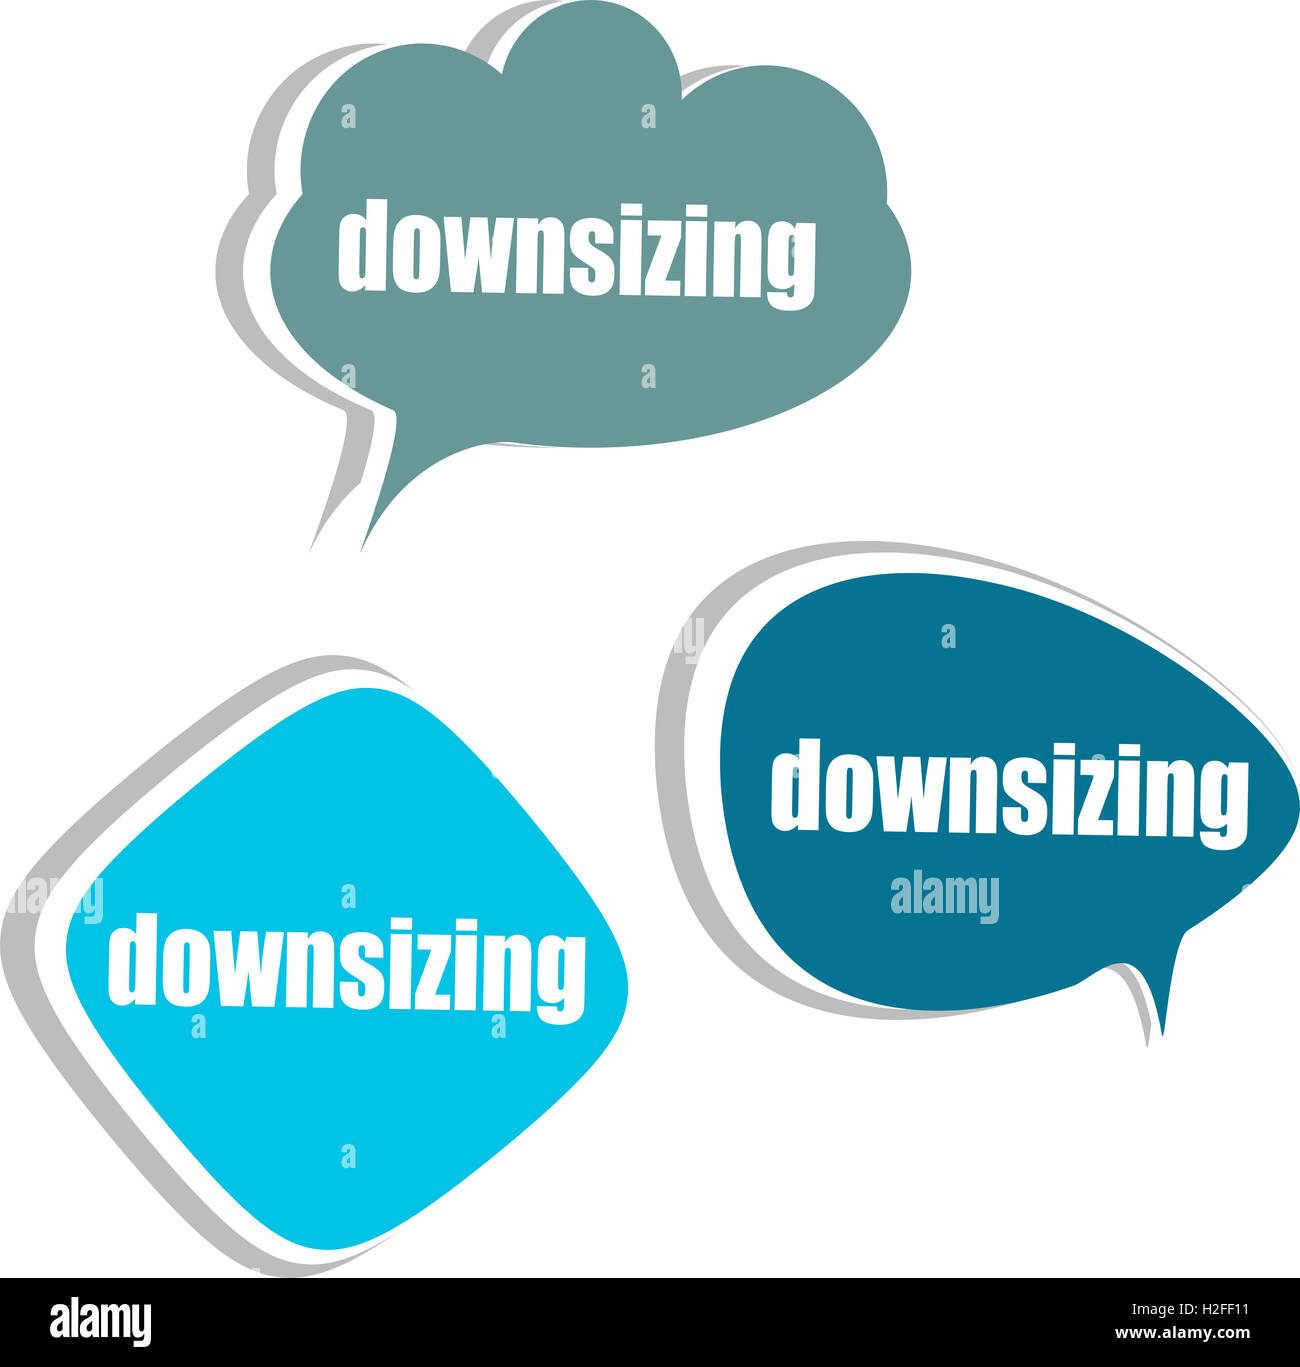 downsizing. Set of stickers, labels, tags. Business banners, infographics - Stock Image